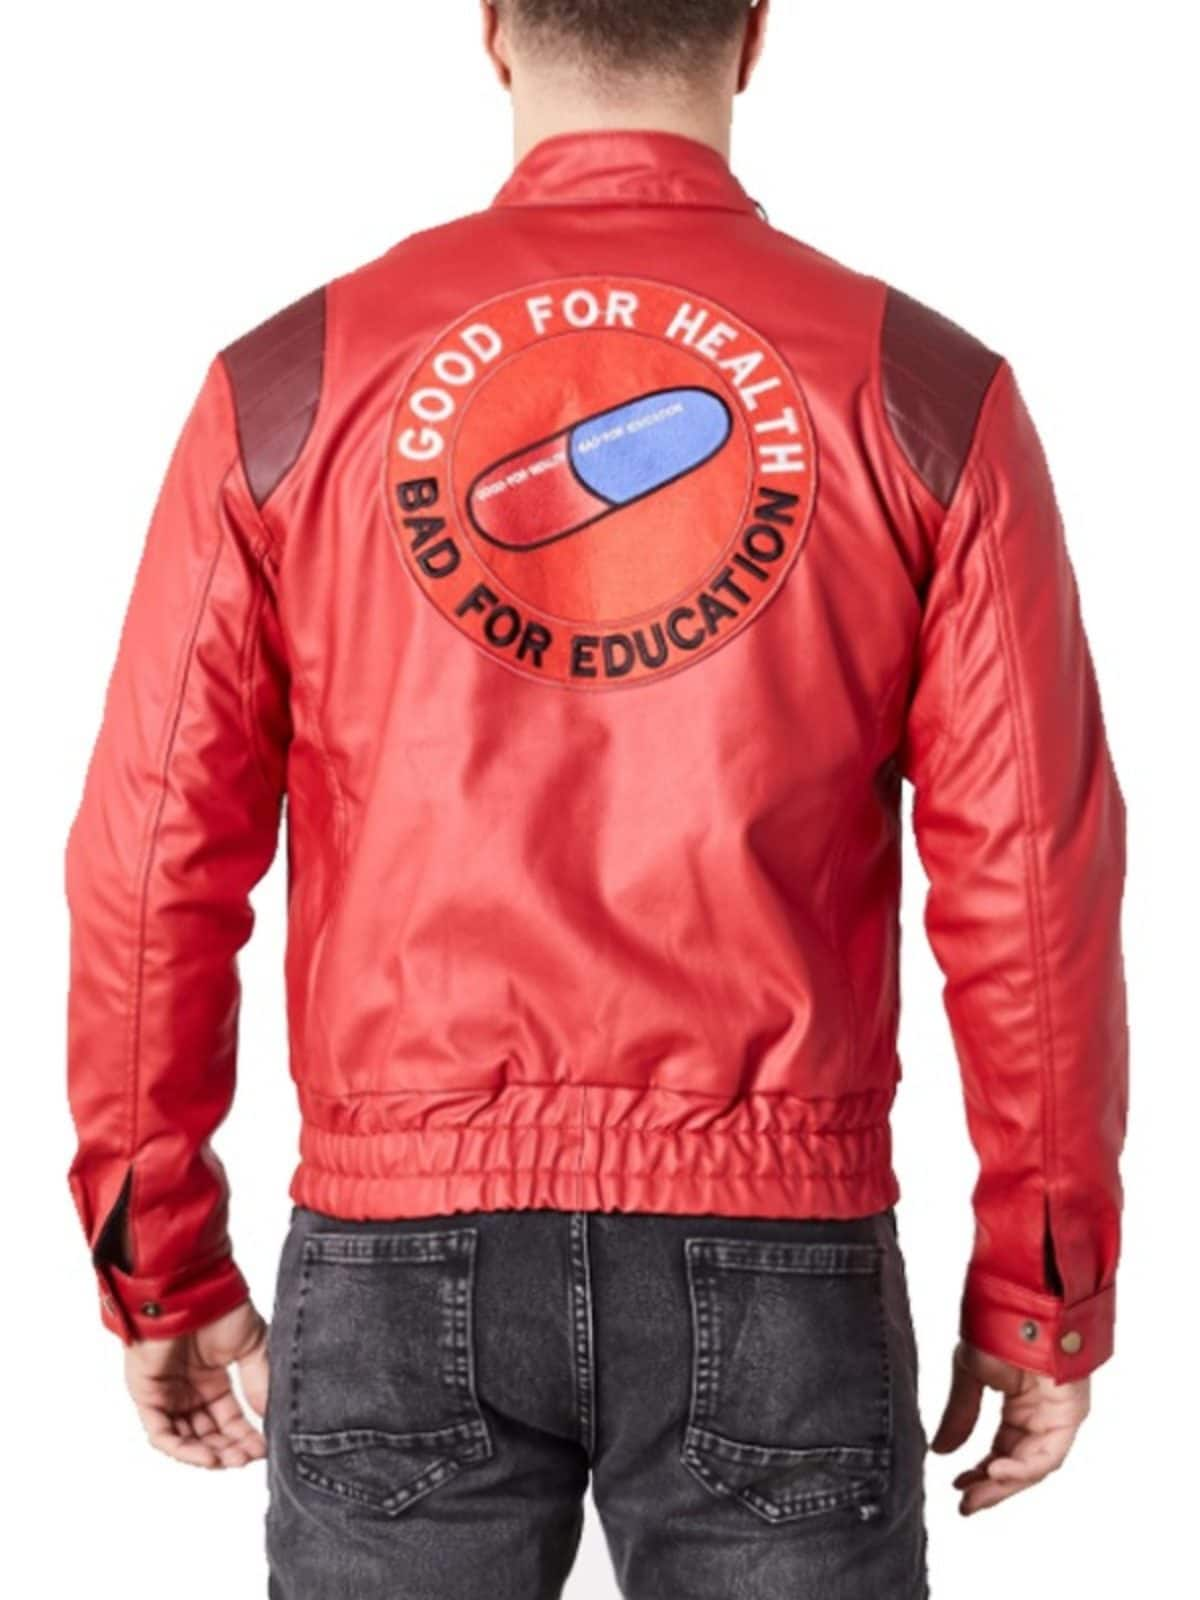 Akira Kaneda Jacket Pill Patch Logo Good For Health Bad For Education 02